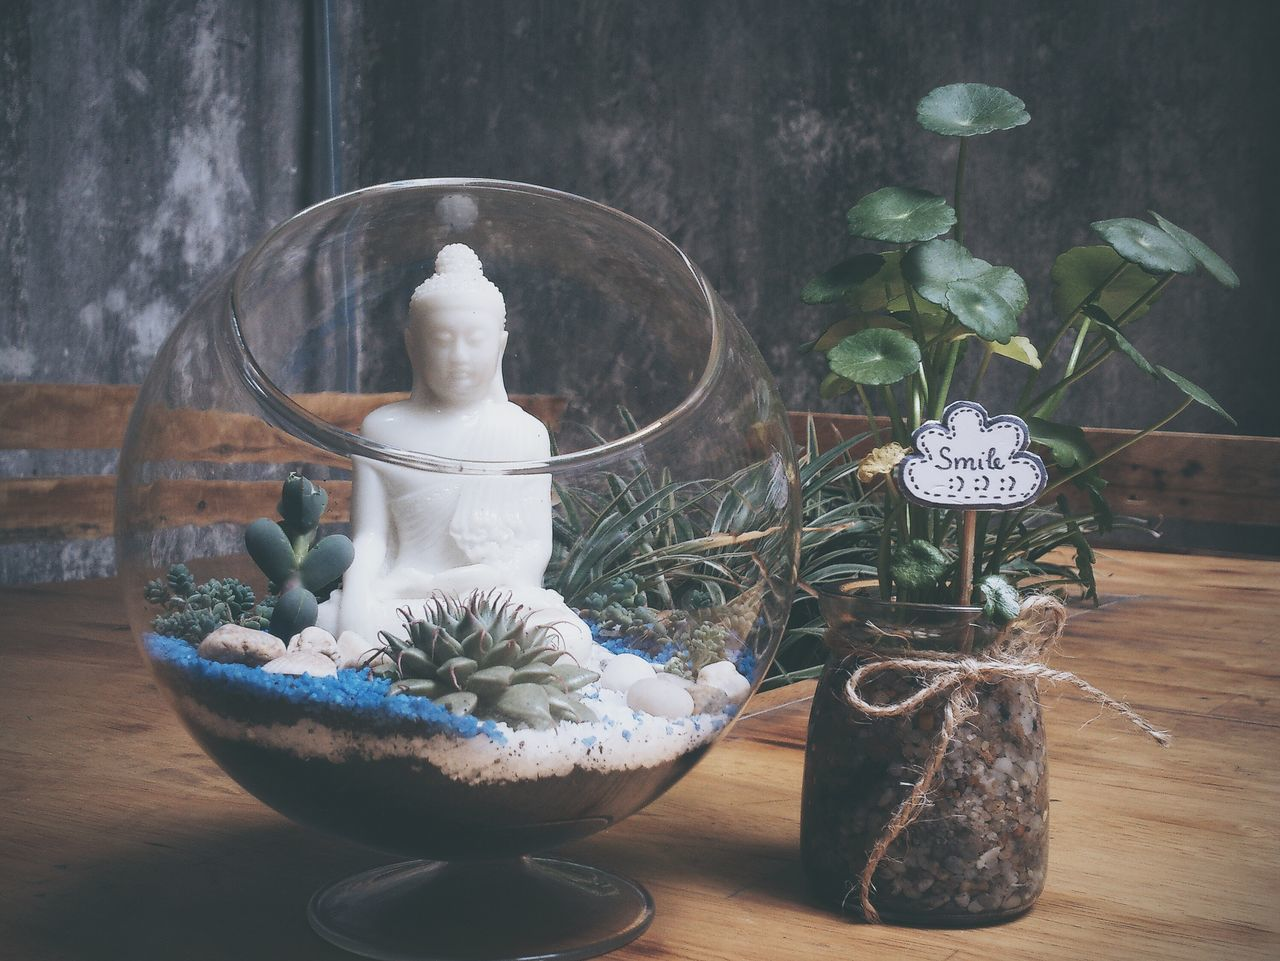 Buddha Buddha Image Buddha Buddhist BUDDHISM IS LOVE Terrarium Terrarium🍀 Terrariums Photooftheday Hanoi , Vietnam Photography Hanoi Vietnam  Minhsmilie Liên Hệ Chụp ảnh 0903458794 Hello World Smiliefotografer Daydream The Portraitist - 2016 EyeEm Awards